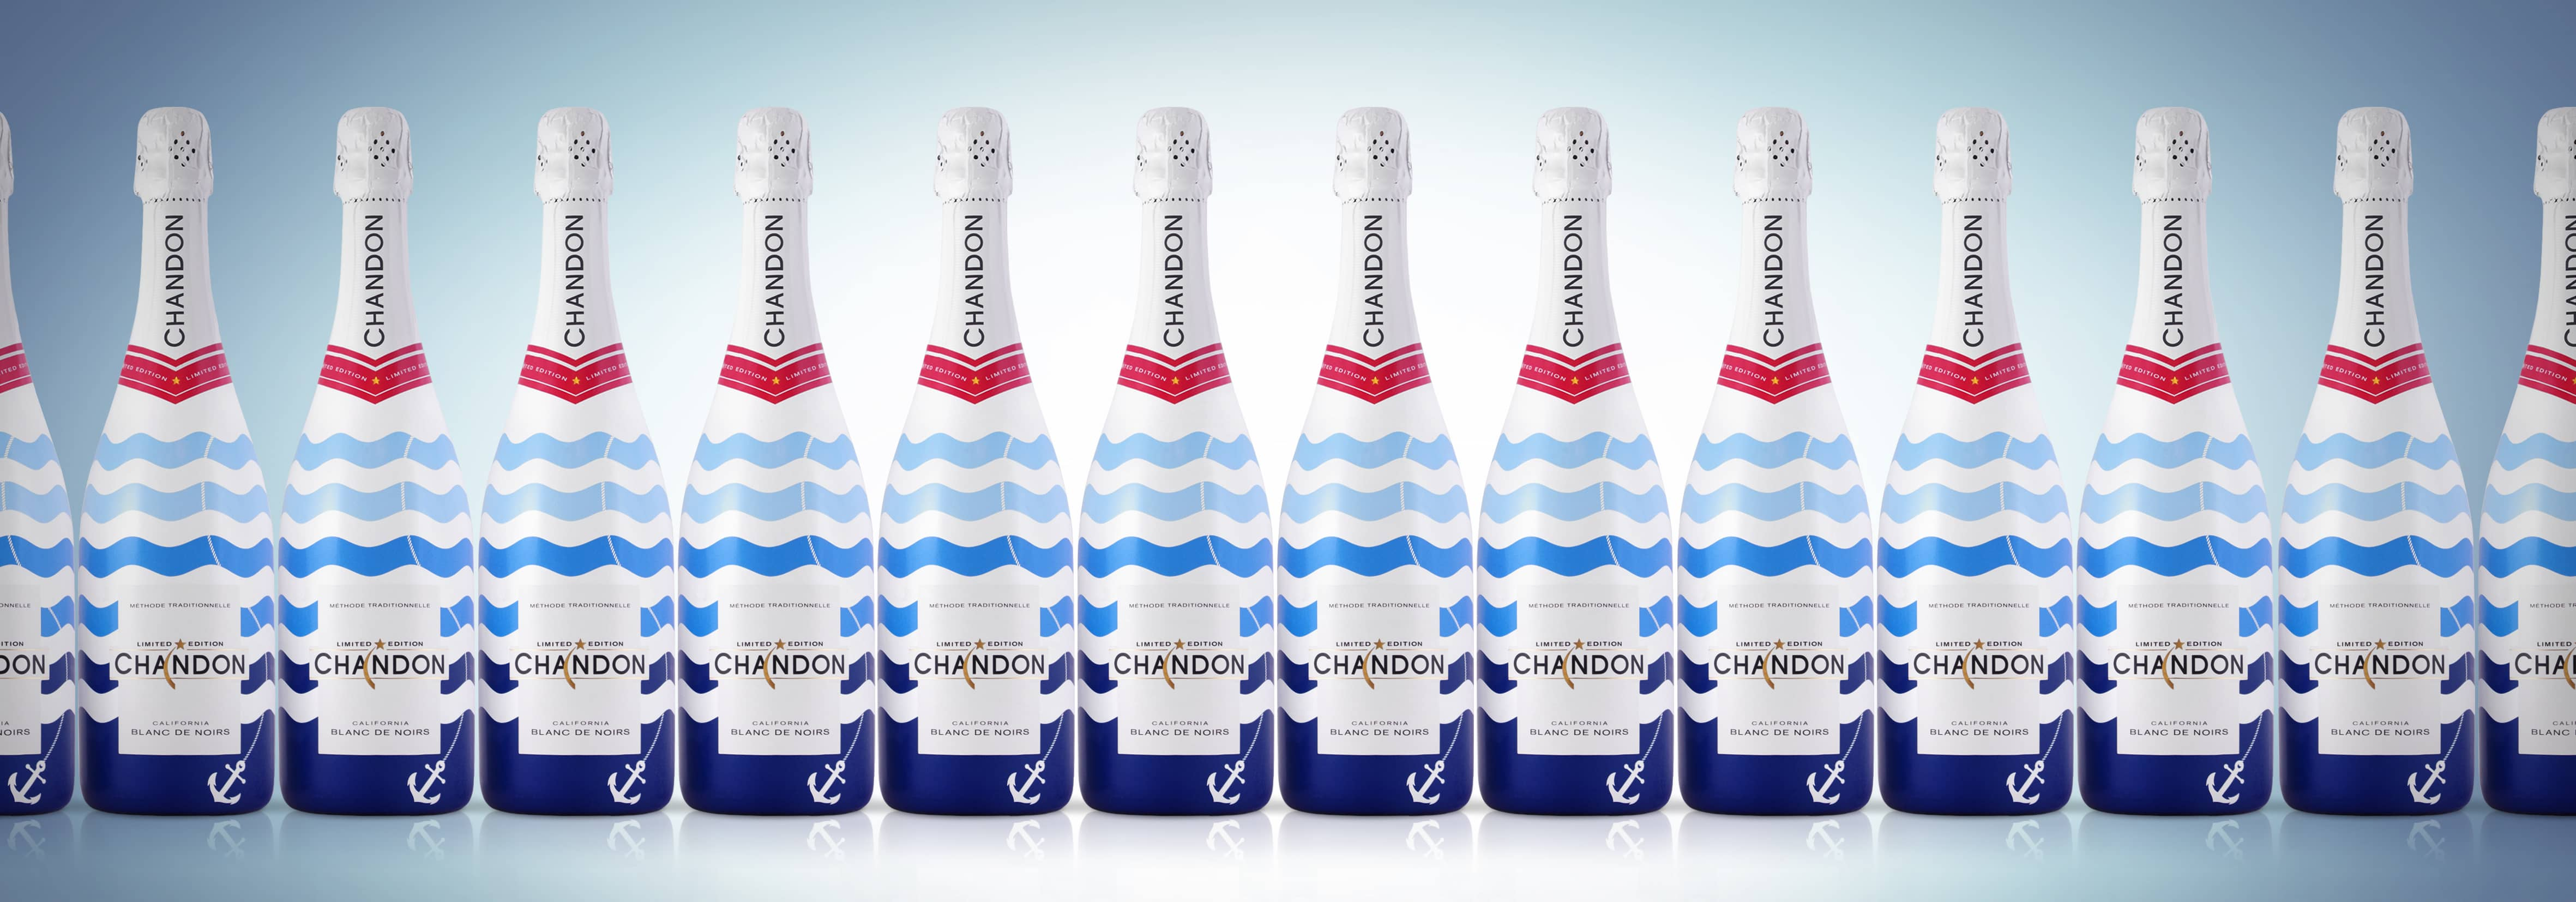 Chandon-Summer-14-Bottles-Line-up